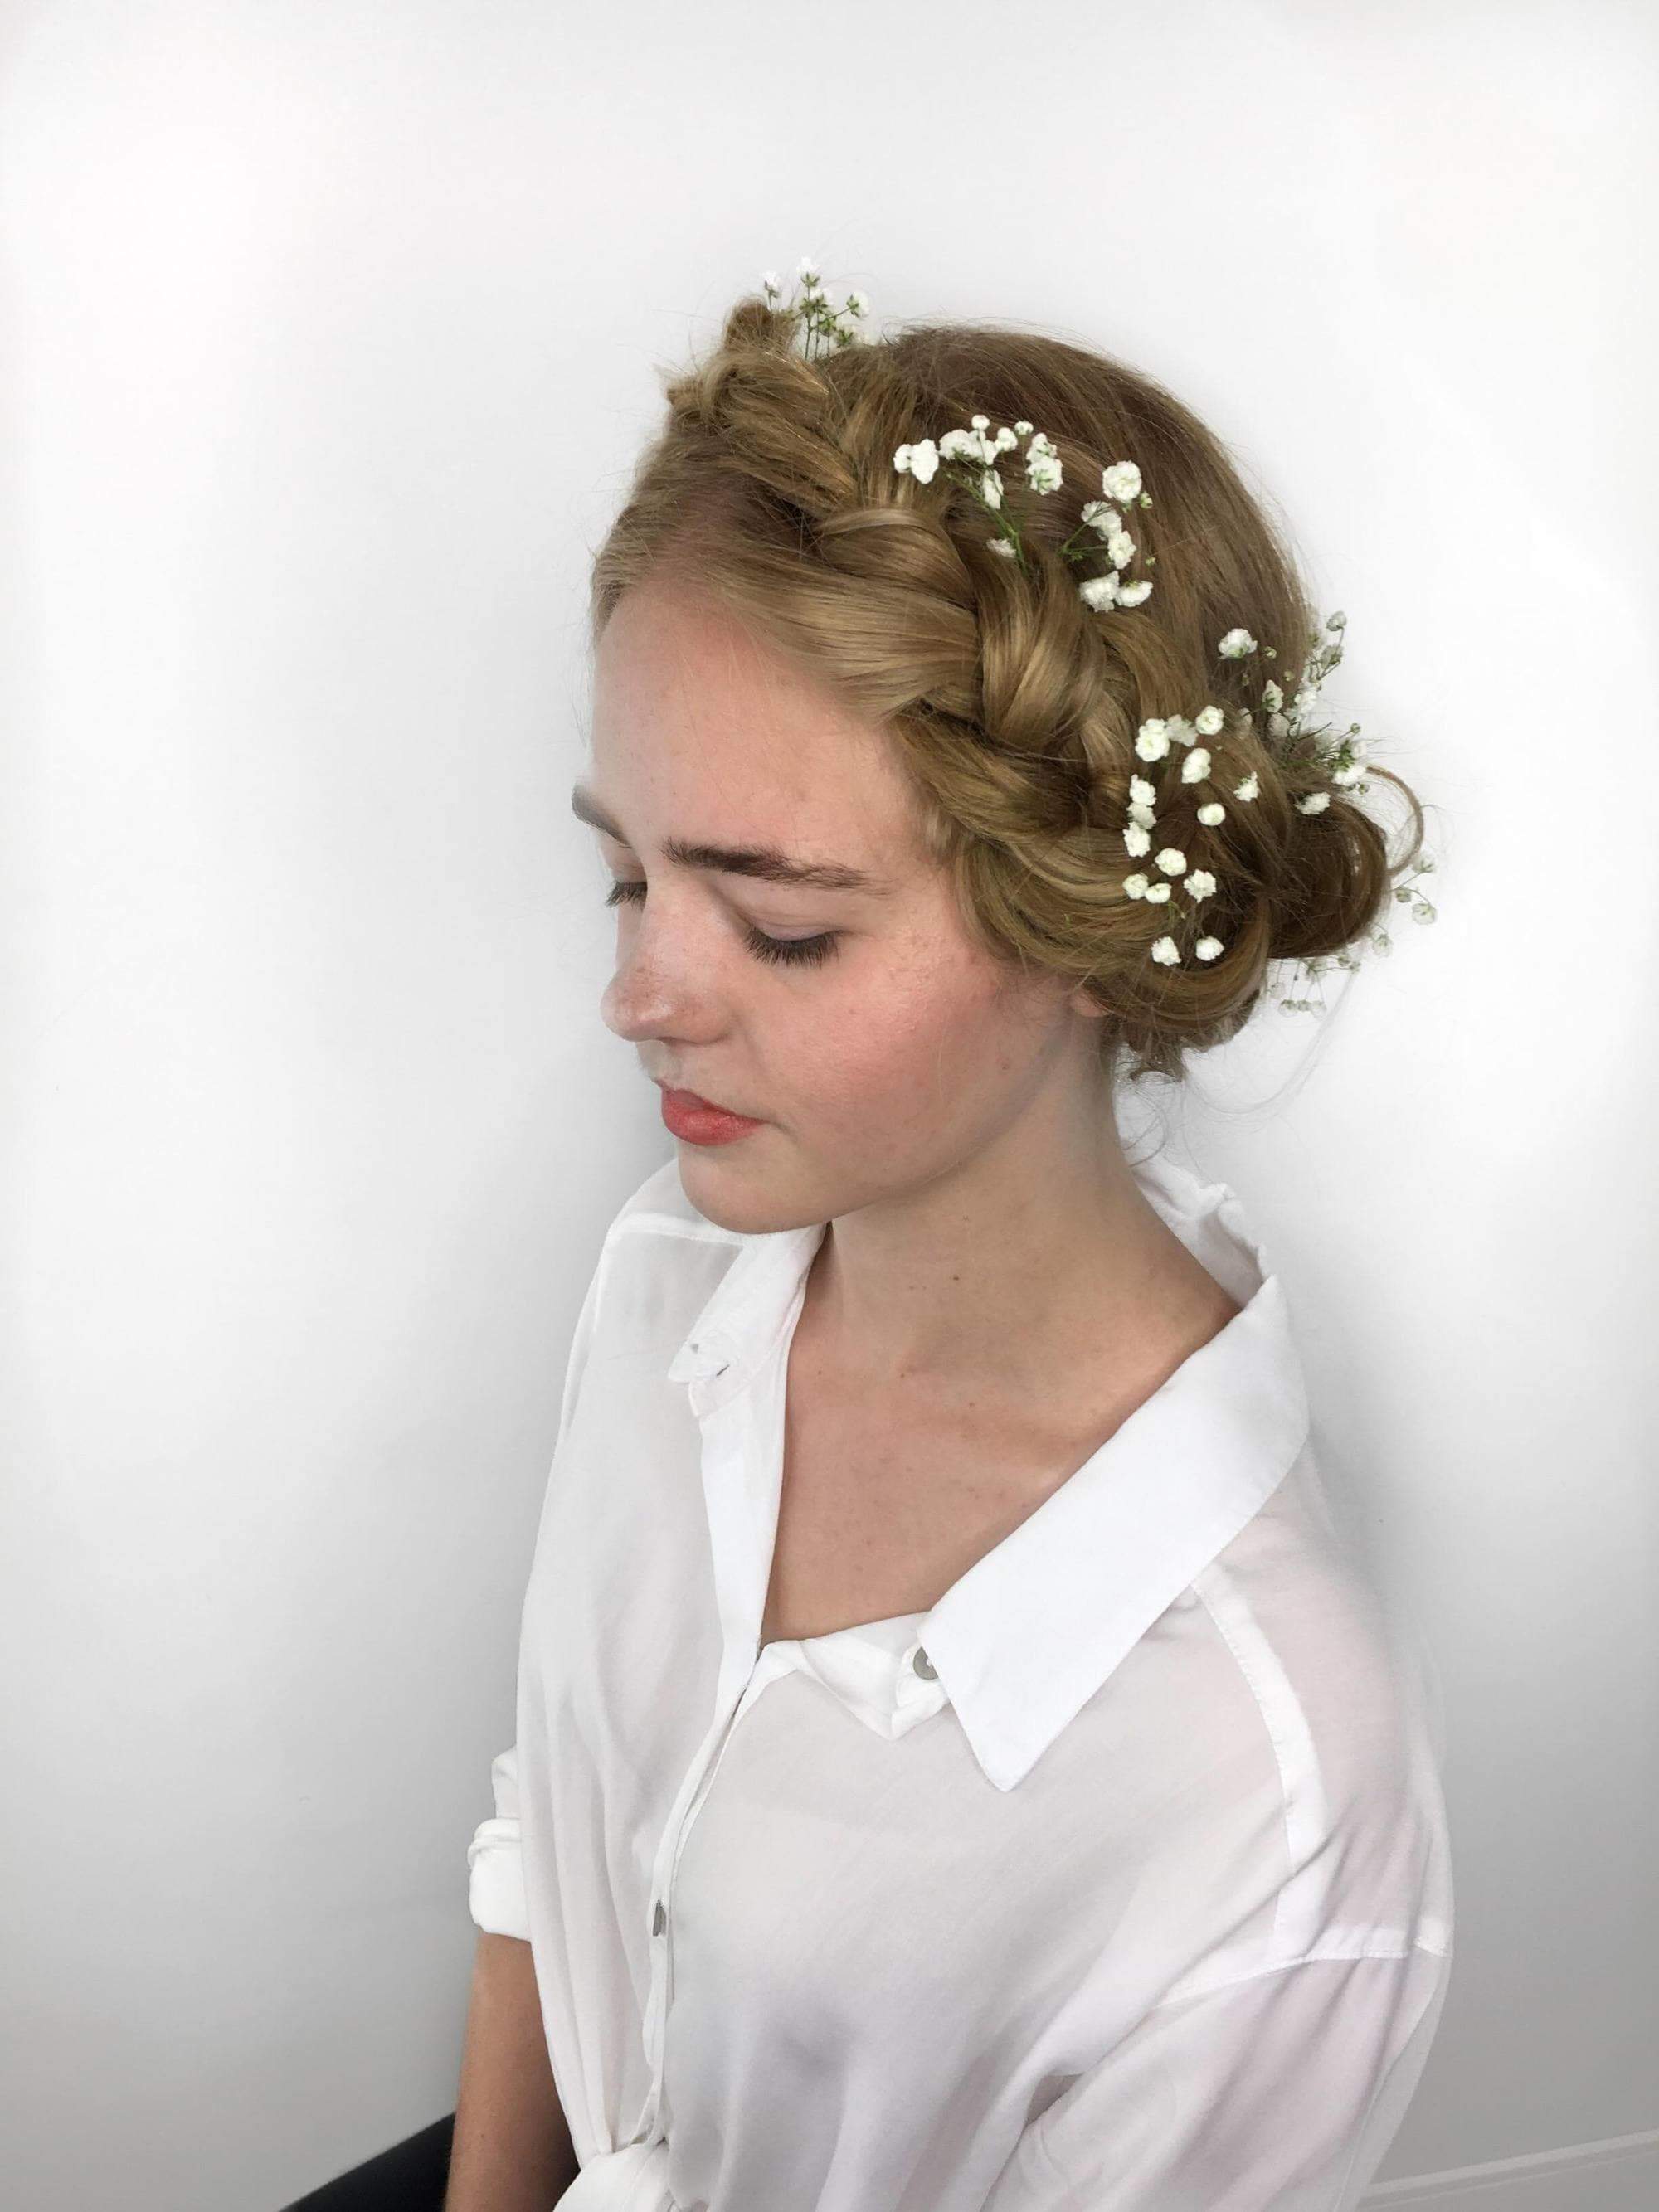 Awesome Simple Hairstyle For Wedding Elaboration - The Wedding Ideas ...